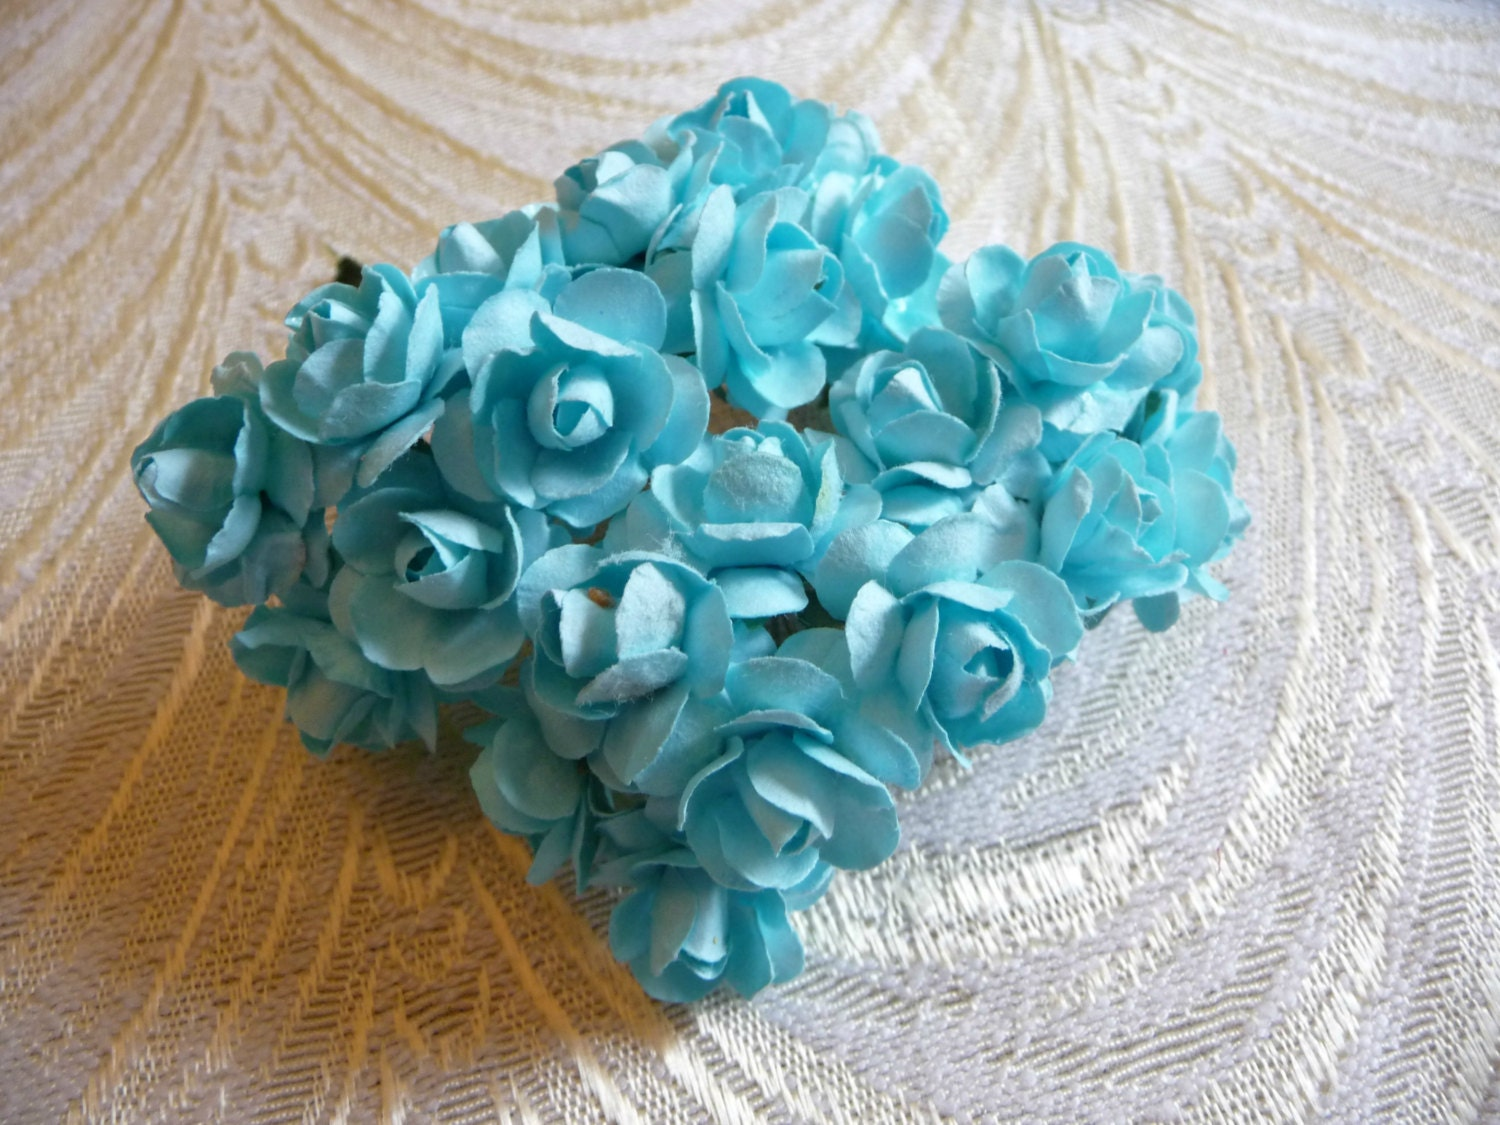 Paper Roses Handmade Flowers Bunch Of 24 Aqua Blue Turquoise Etsy